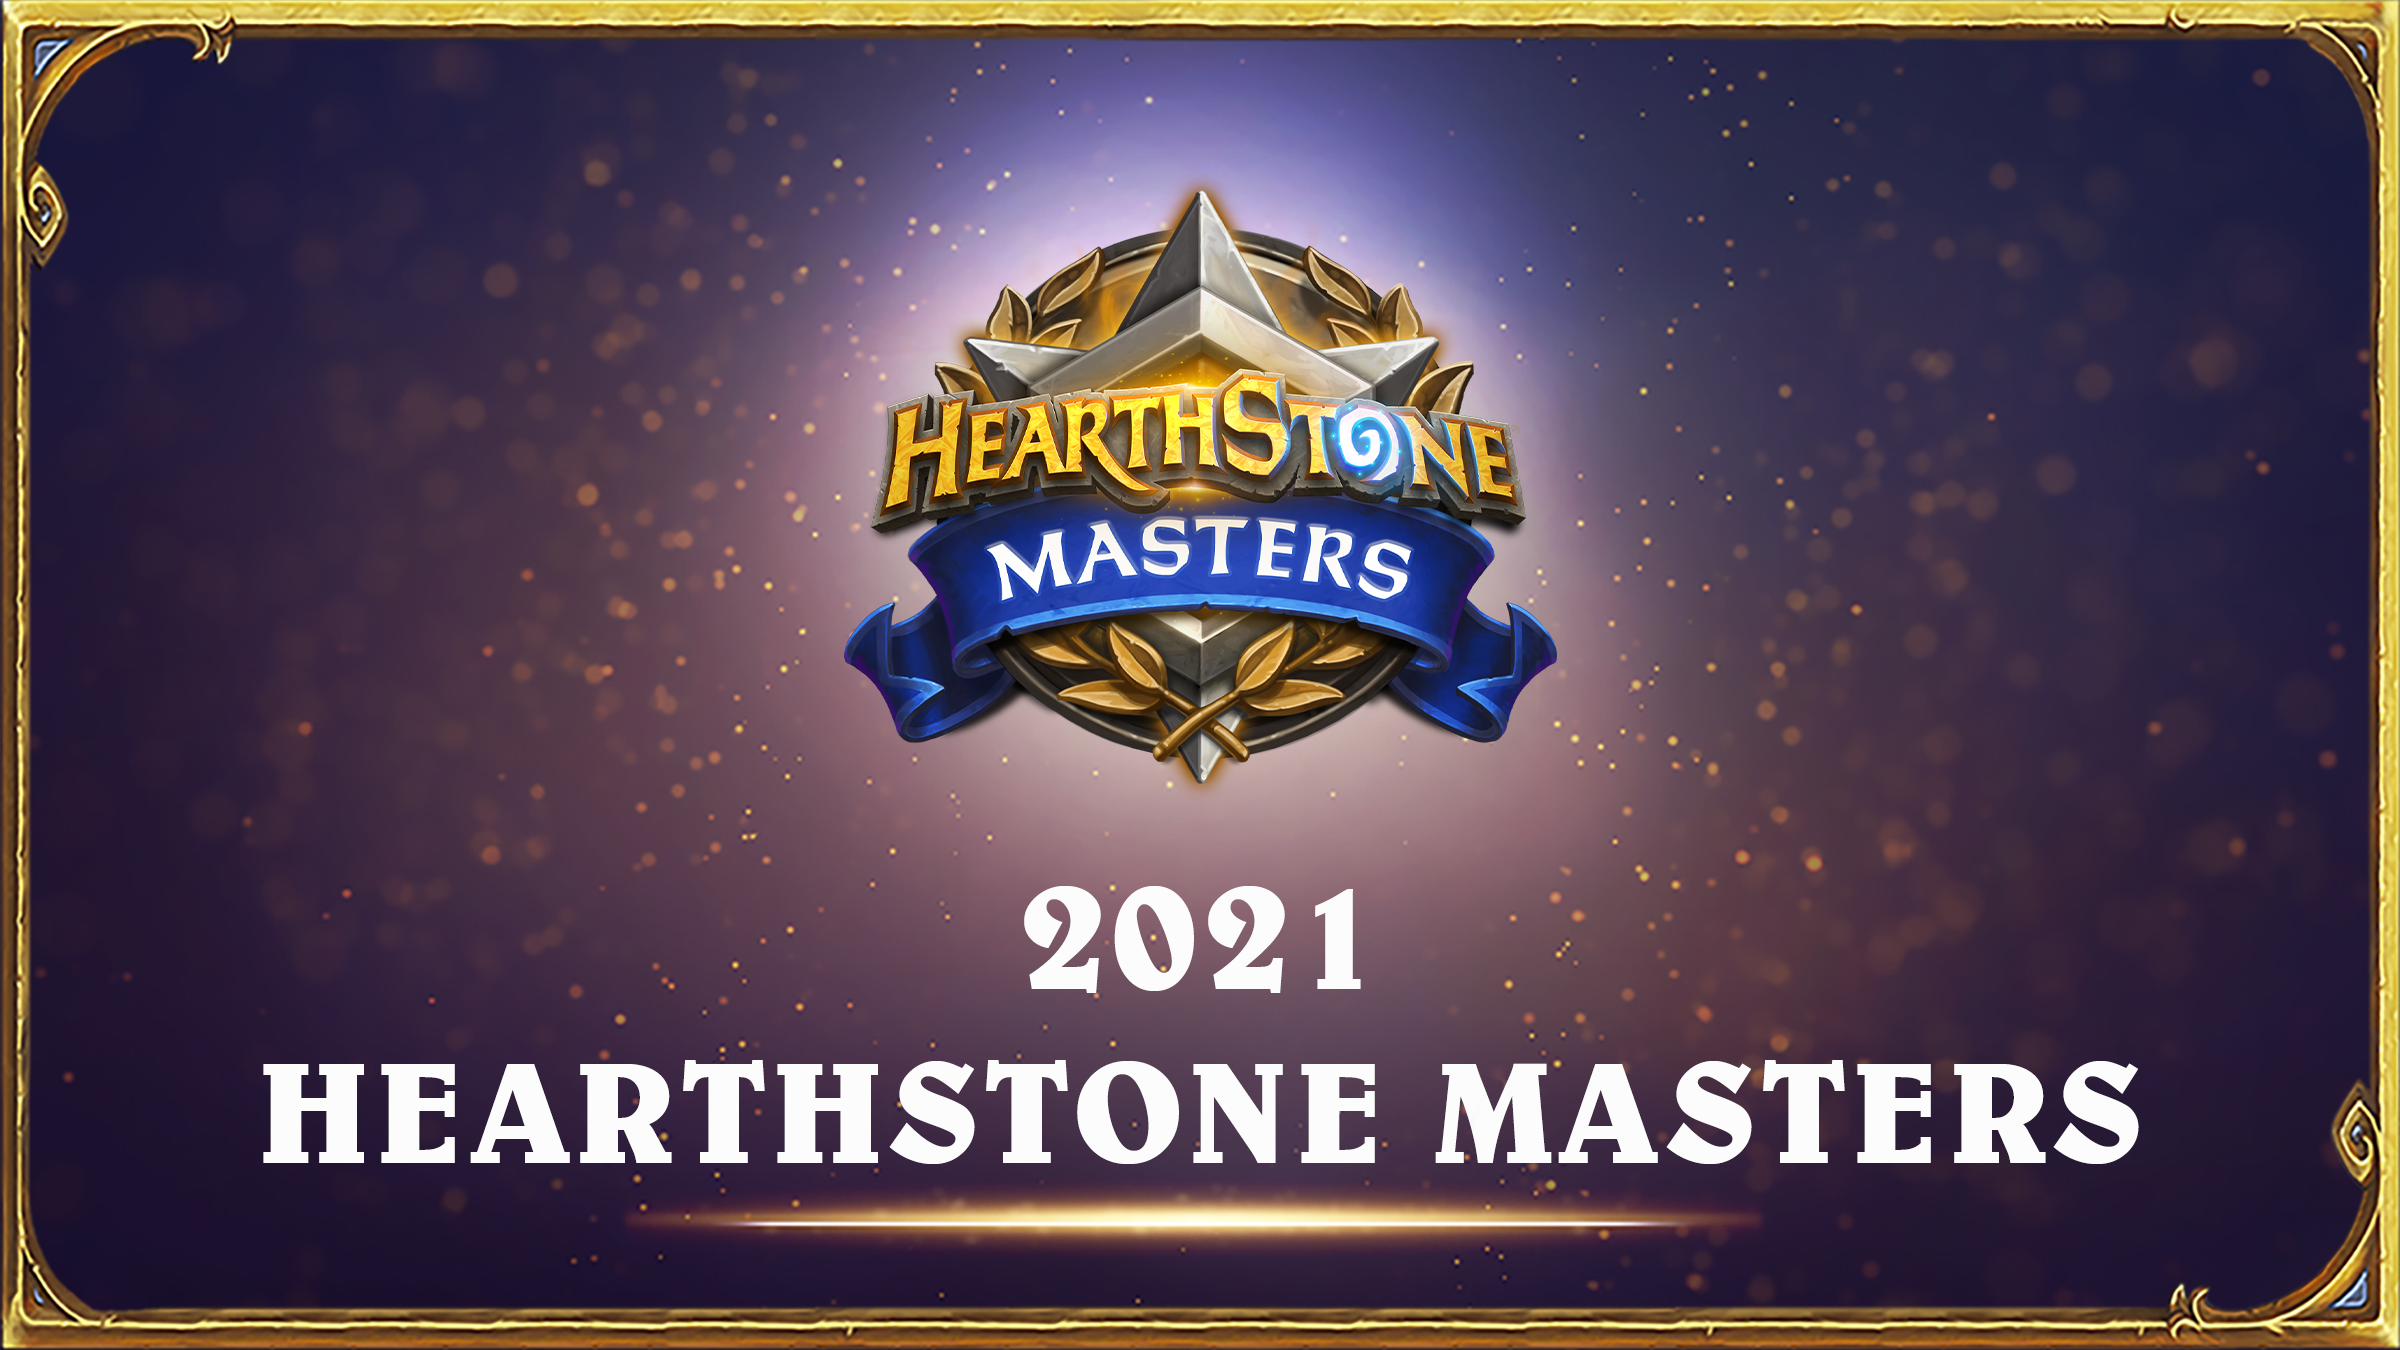 First Look at Hearthstone Masters in 2021!